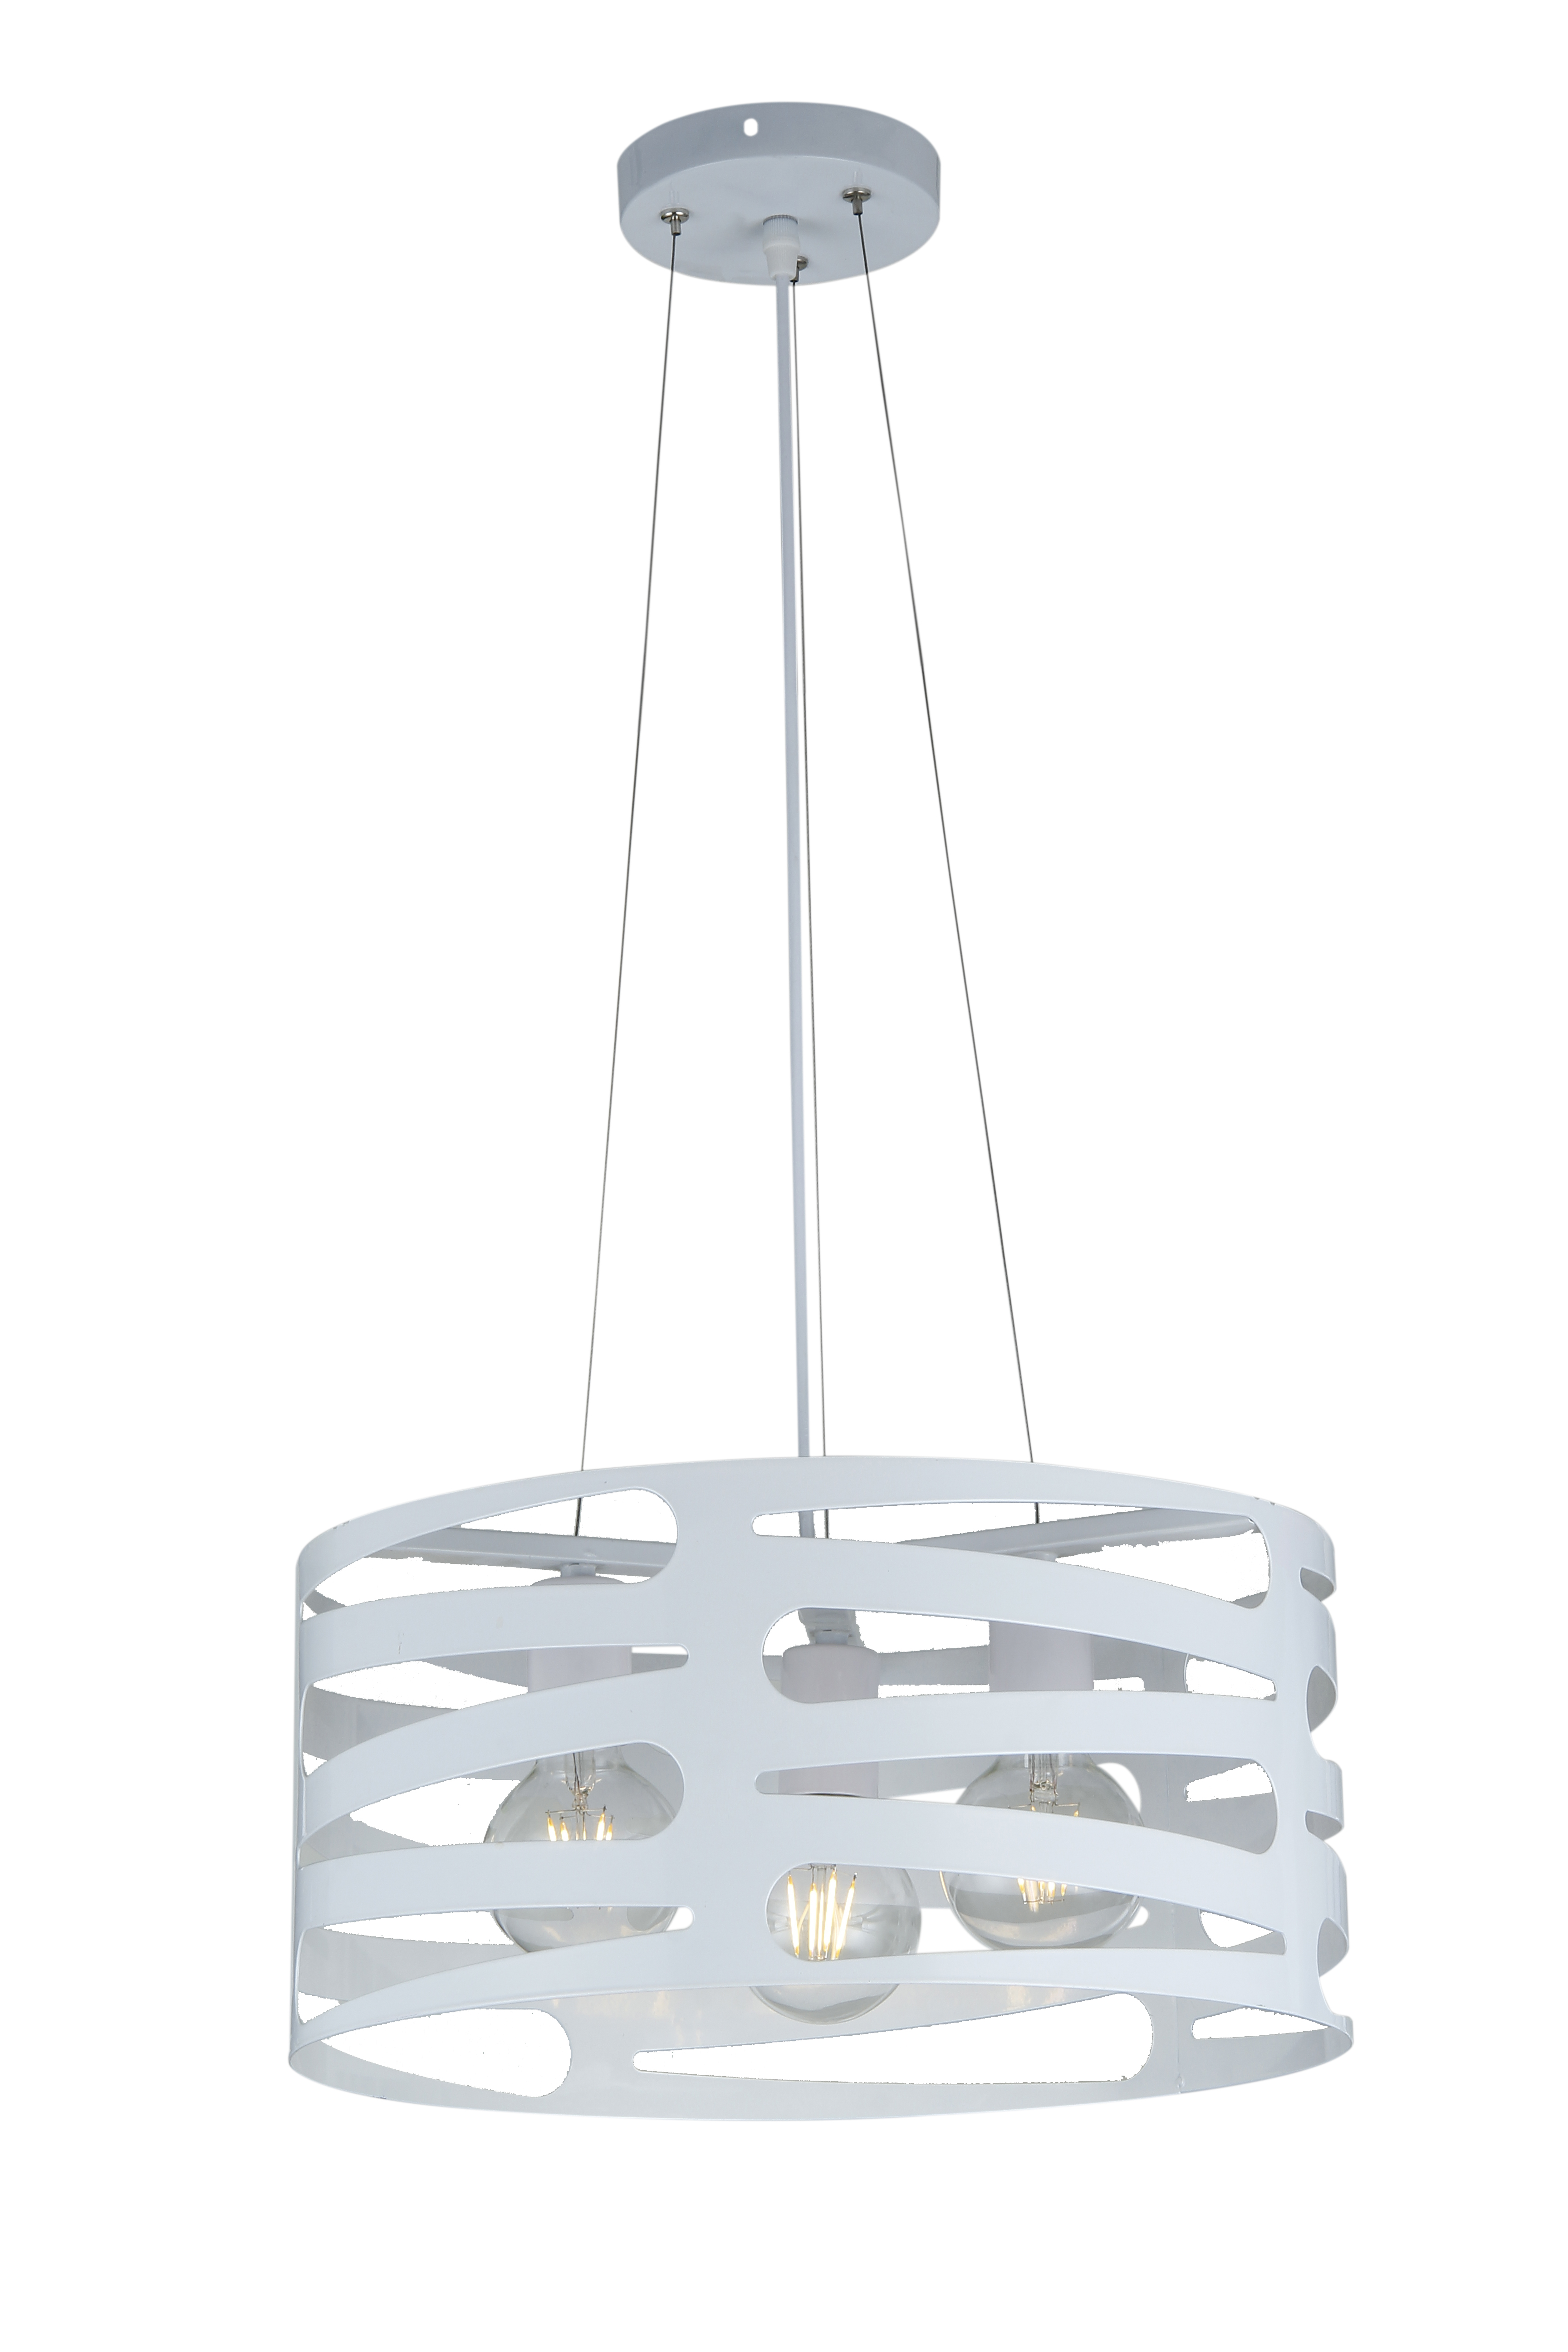 SUPERLIGHTS PENDANT LIGHT 3xE27